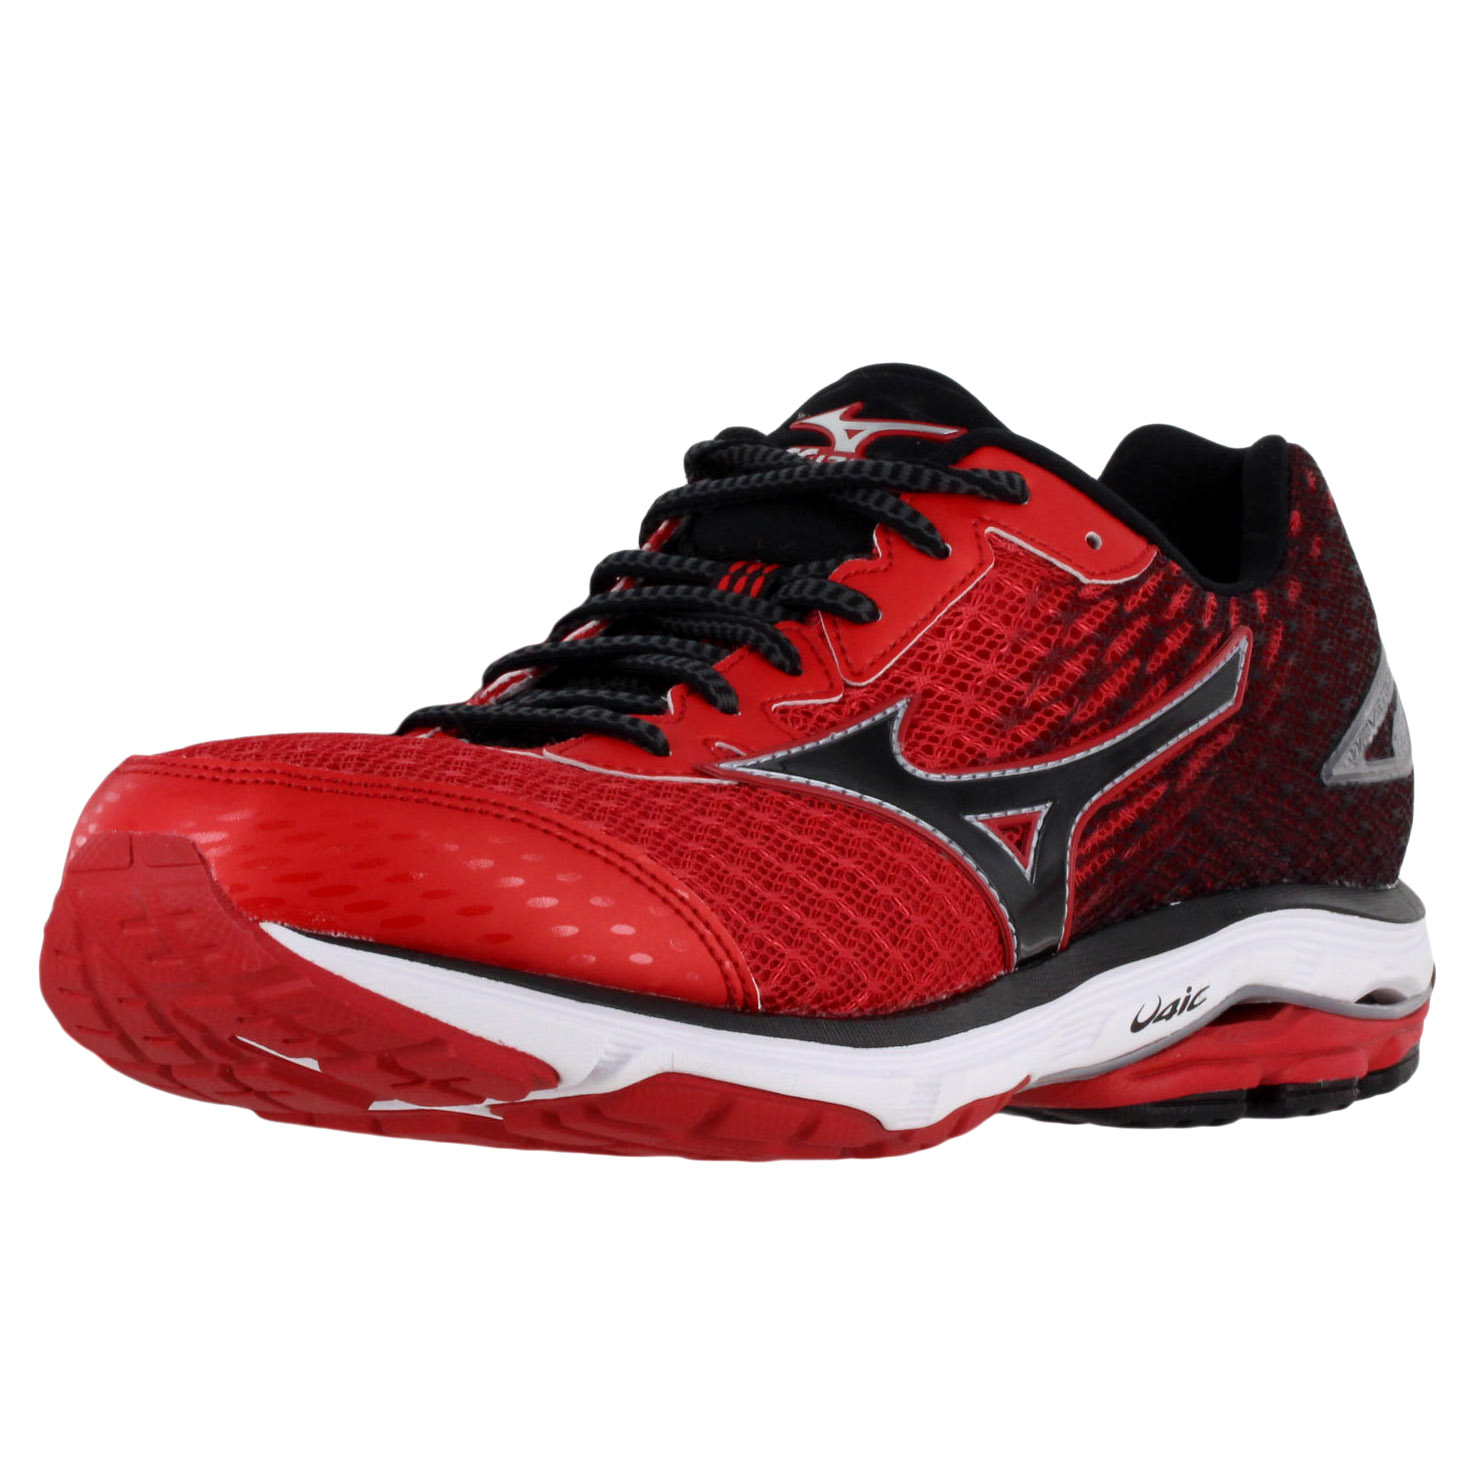 buy online 766b0 e824b Details about MIZUNO WAVE RIDER 19 MENS RUNNING SHOES 410734-1F90  RED/WHITE/BLACK